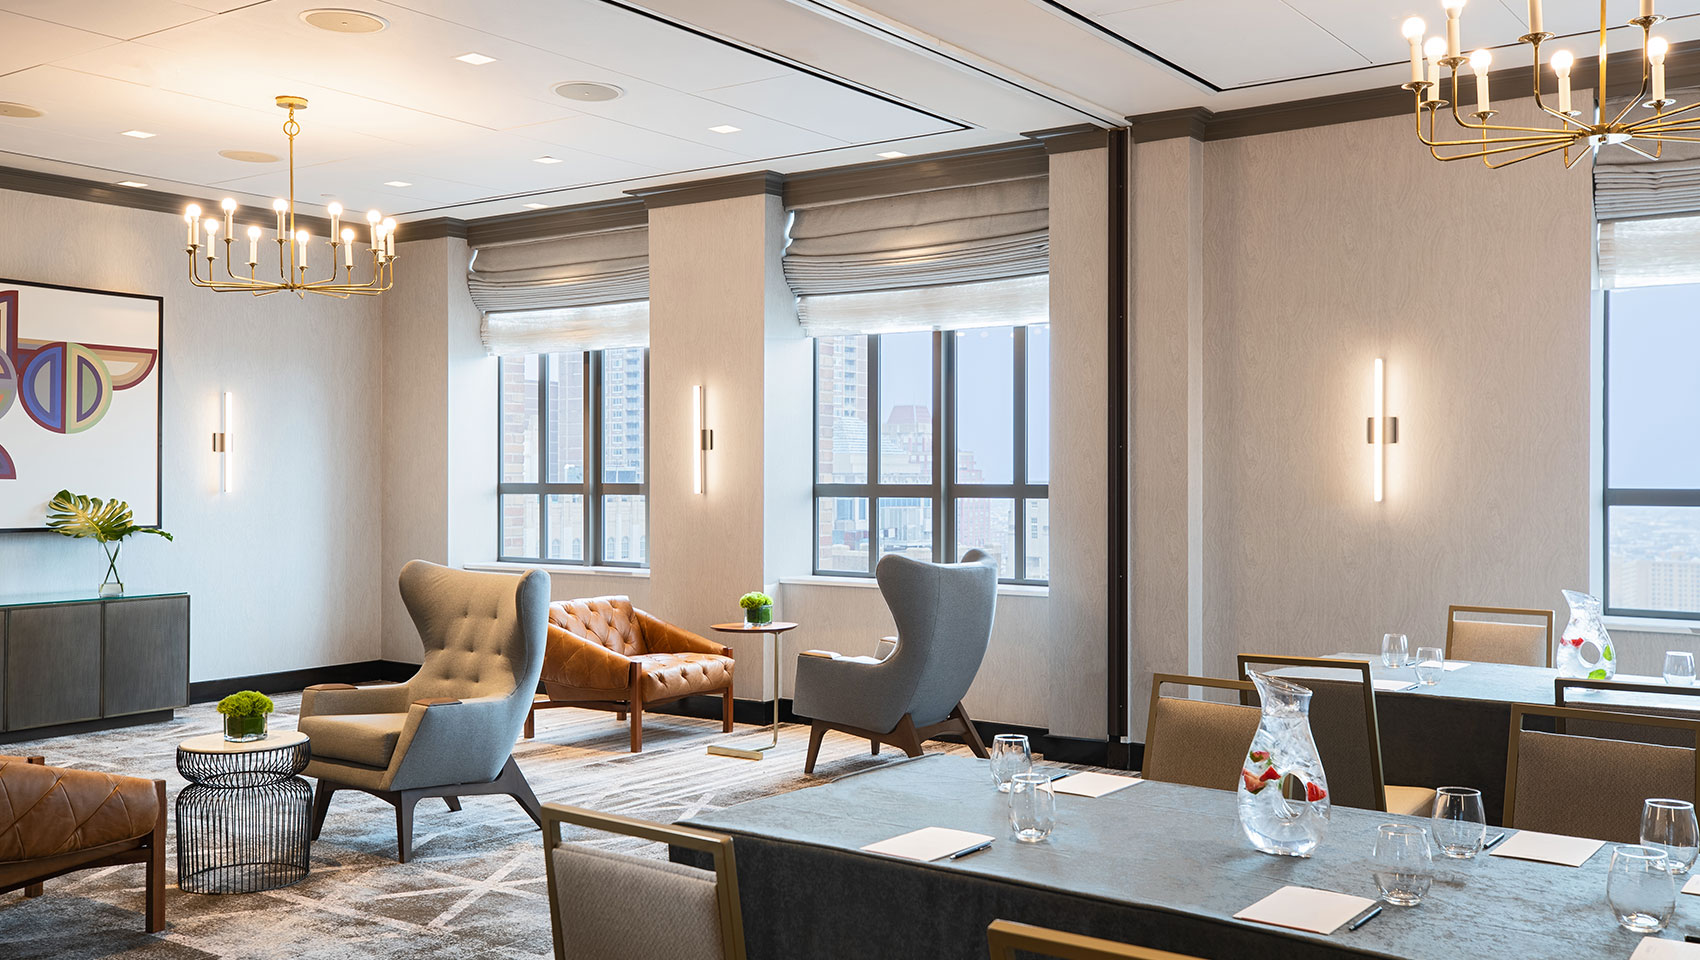 Cret room at Kimpton Hotel Palomar Philadelphia in a brainstorm set up with a long table with notepads to one side and comfortable face-to-face chairs on the other, all encompassed within a room with multiple large windows and city views